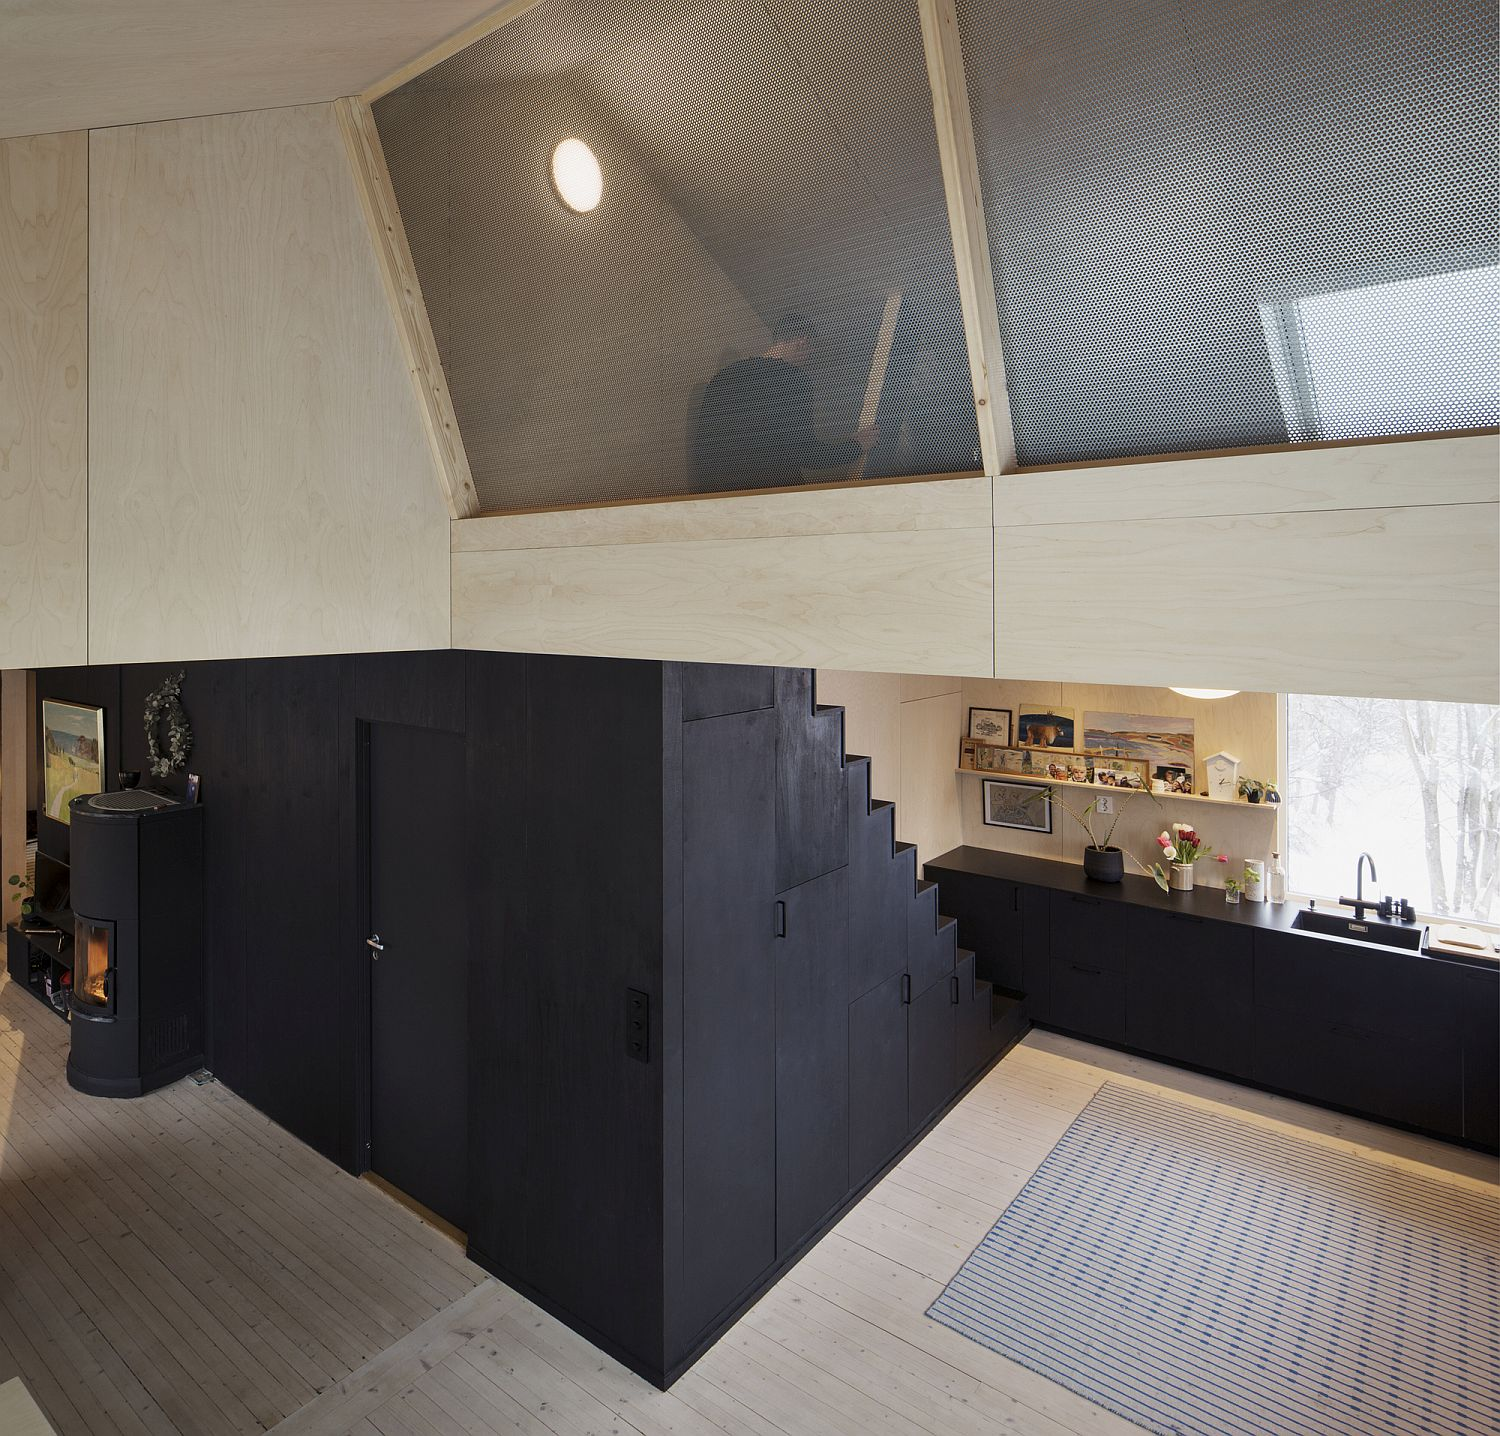 Dark stairway with built-in storage leeds to the space-savvy attic level